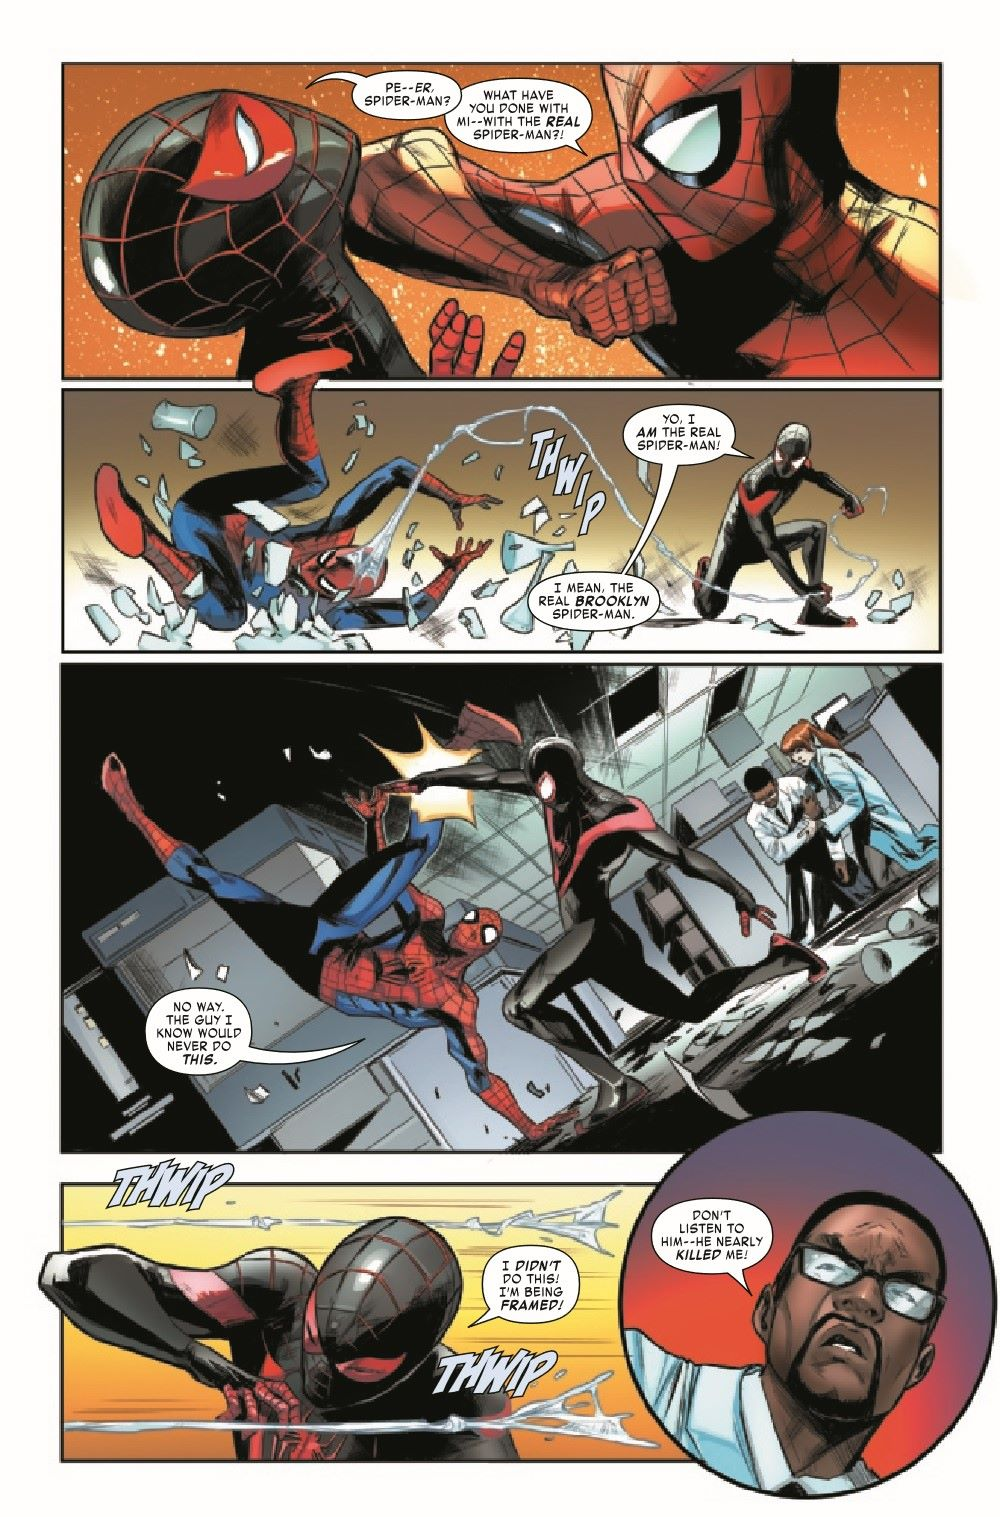 MMSM2018025_Preview-7 ComicList Previews: MILES MORALES SPIDER-MAN #25